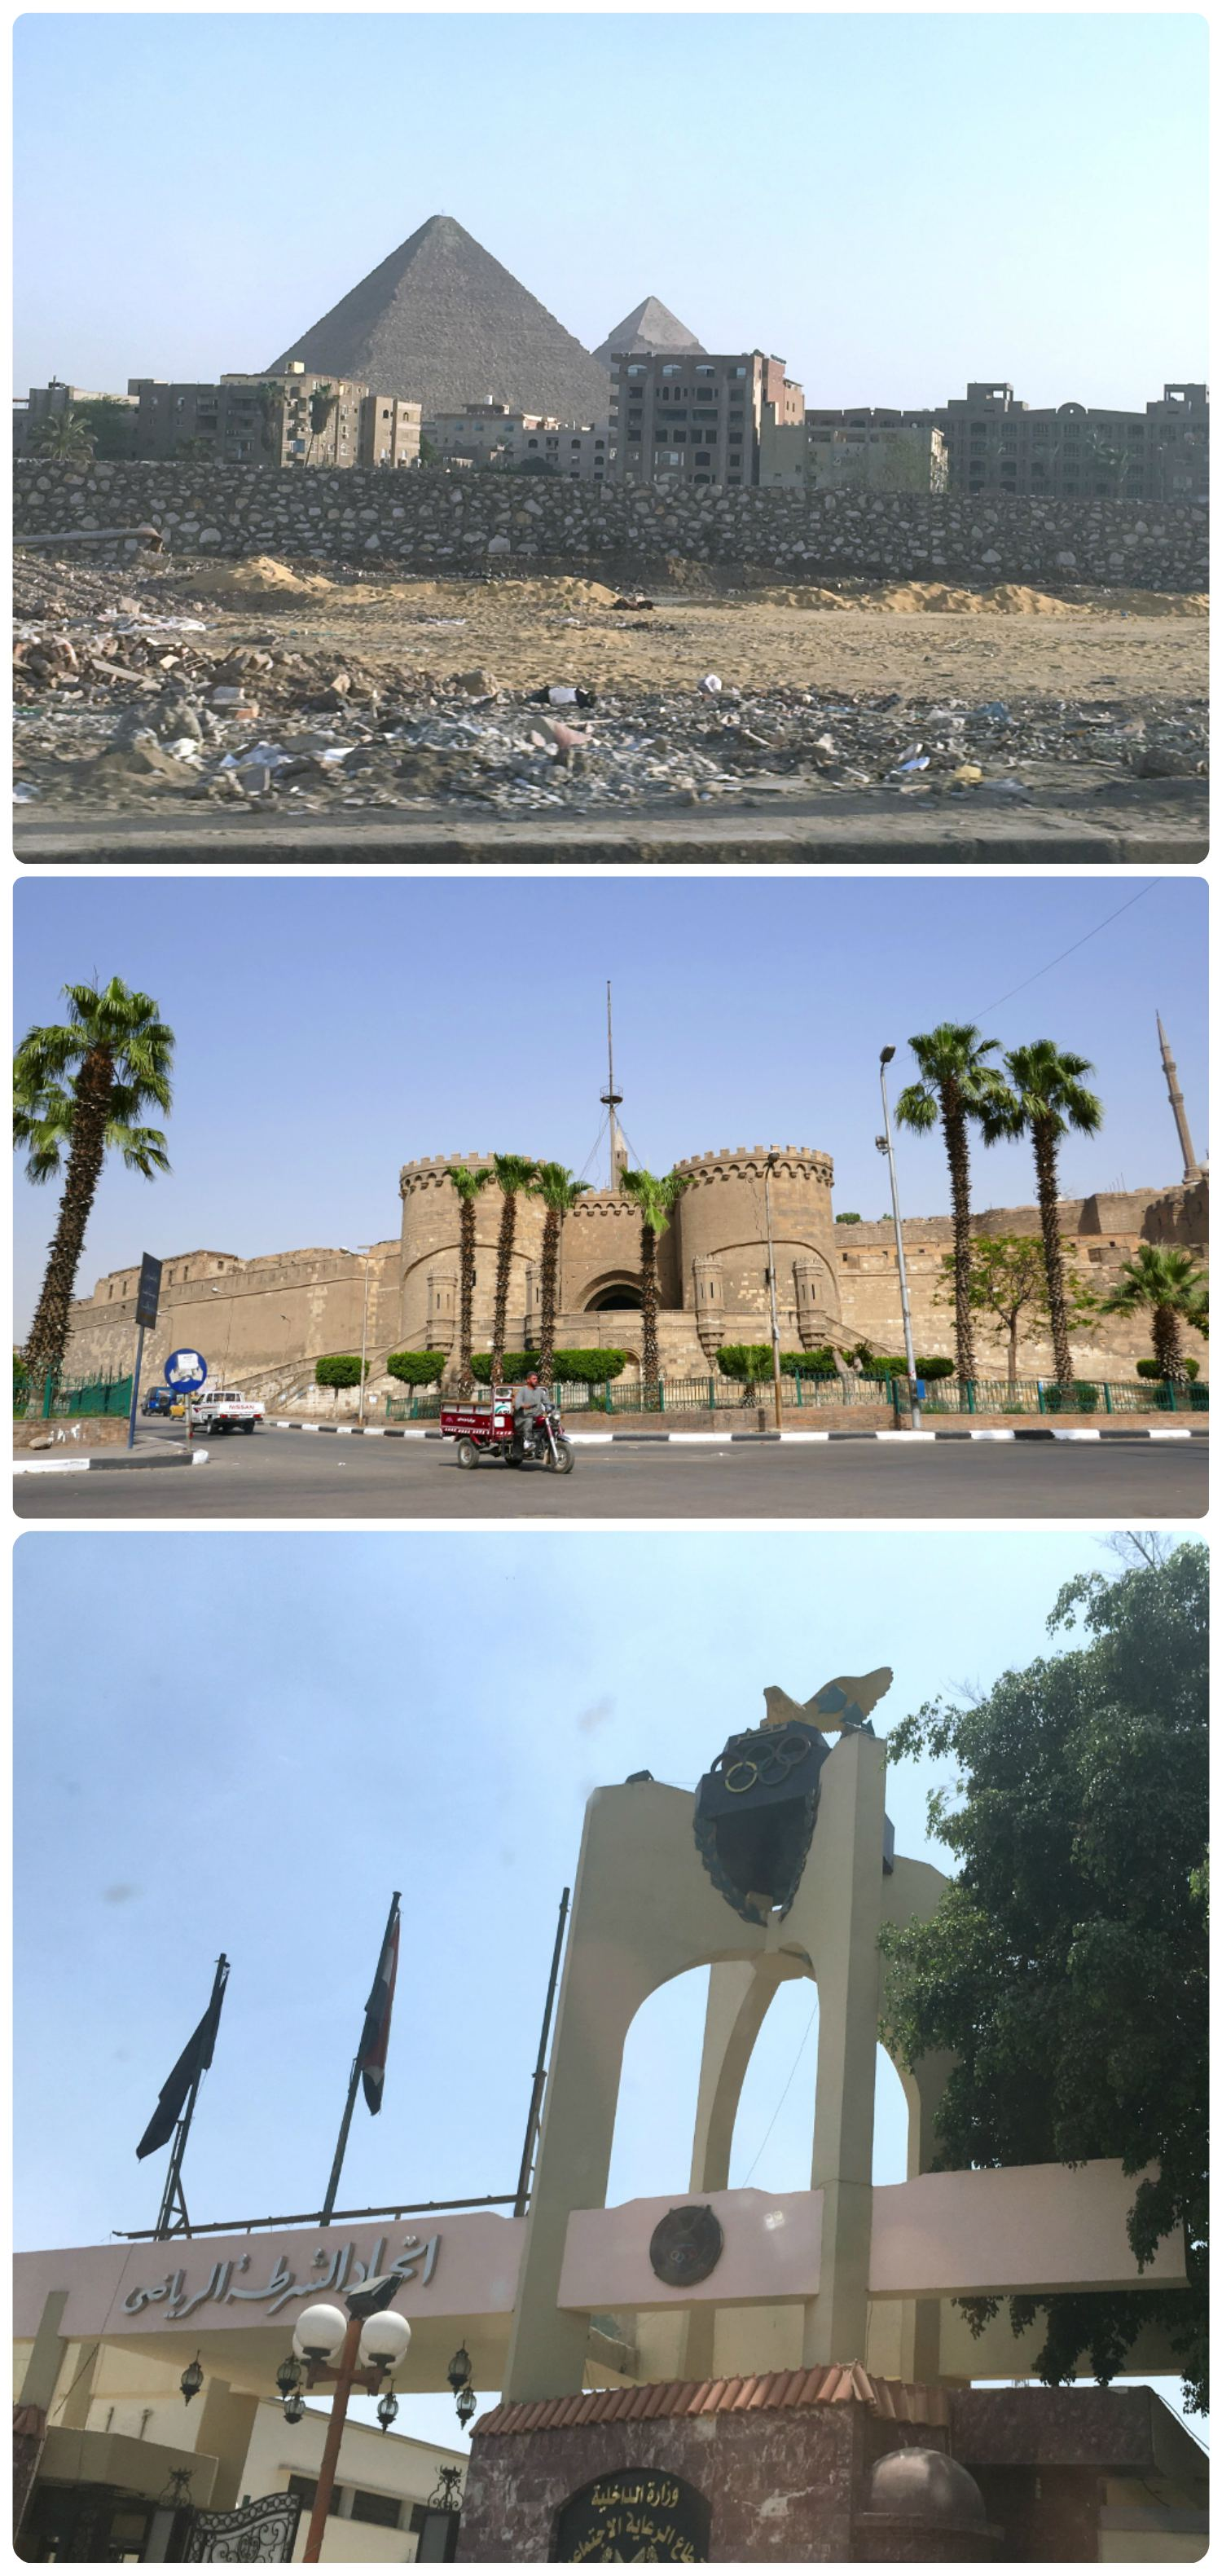 Images from our taxi and Uber rides in Cairo. From the top: A view of the Great Pyramids from the road, the front of the Citadel, the front of the Cairo Olympic Training Center.